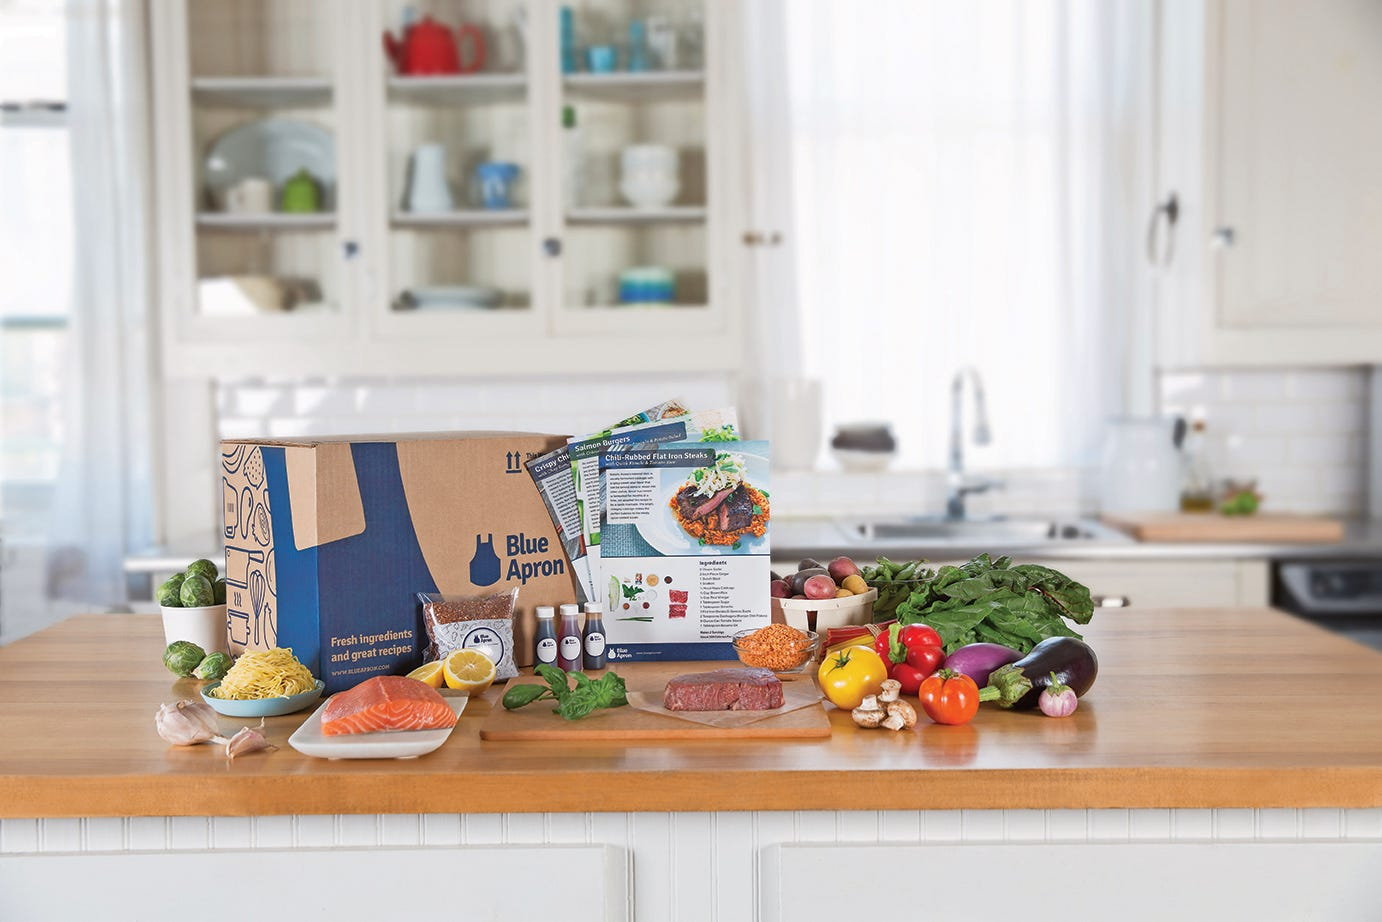 Blue Apron prices IPO at $15-$17 per share to raise $500M